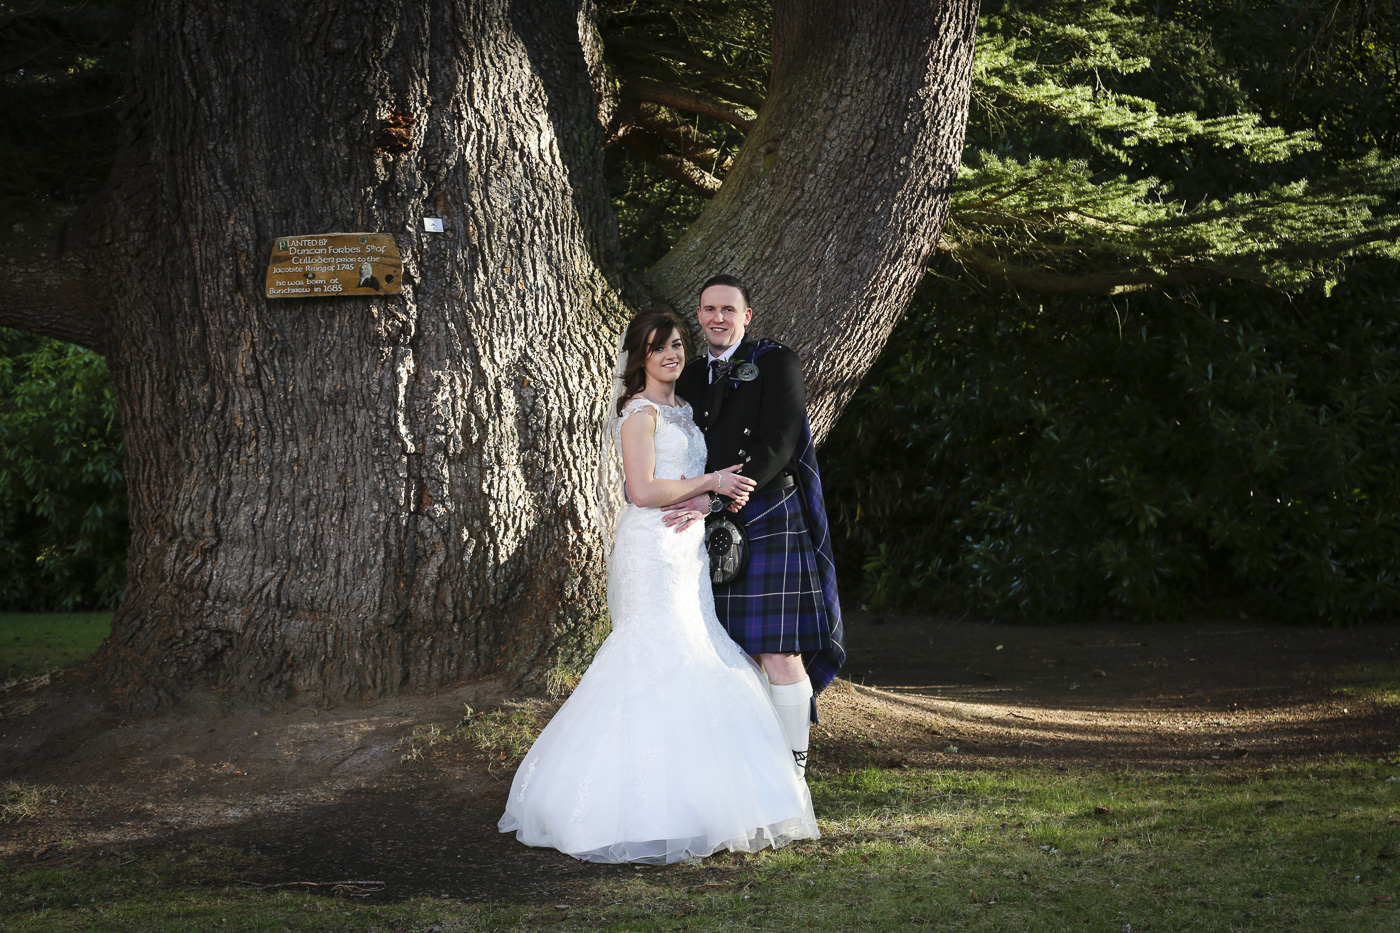 wedding-photography-at-bunchrew-house-inverness-9155